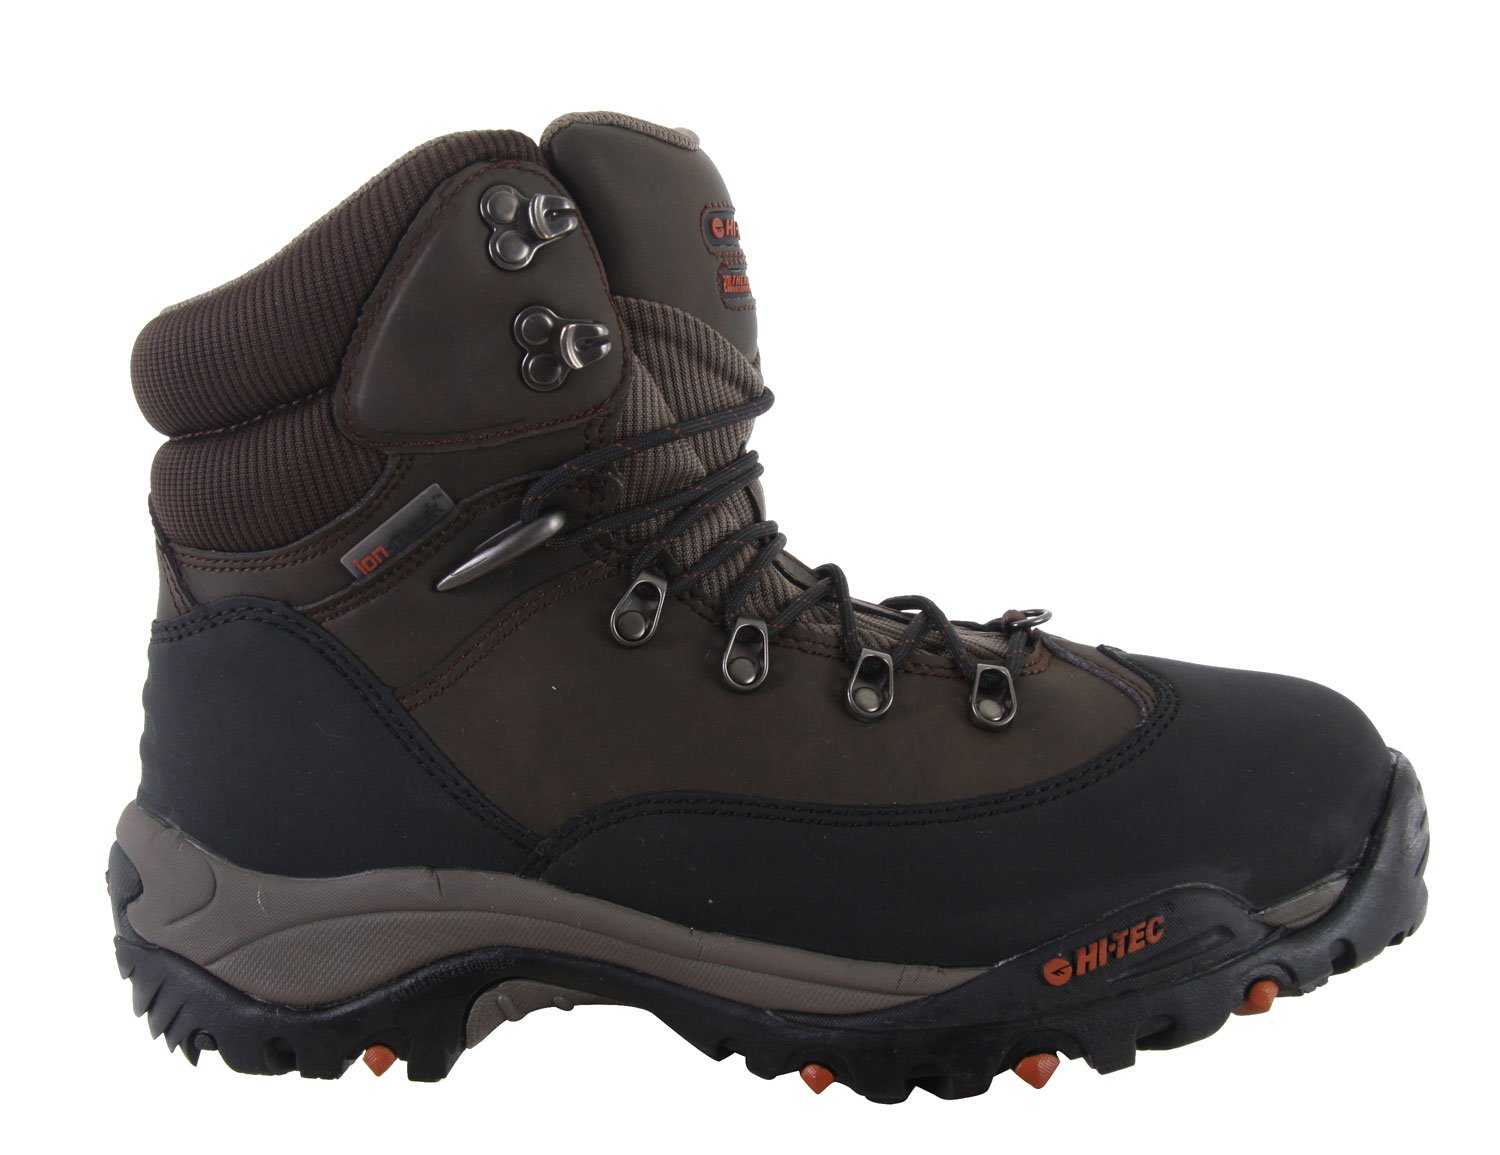 Camp and Hike Support is a must when you are climbing up the side of a mountain or jogging up and down trails. The Hitec Yeti 2 200 casual boots make you feel like a mountaineer with their durable molded construction and aggressive winter traction perfect for traipsing through freezing snow. A comfortable memory foam sock liner cushions your dogs so they don't bark at you by the end of a long day out in the wild. Waterproof and insulated, these boots can take anything you throw at 'em.Key Features of the Hitec Yeti 2 200 Casual Boots: Microfiber And Nylon Upper 200G Thermolite Insulation Thermo-Dri@ Waterproof And Insulated Systems Waterproof Bootie Construction Ion Mask Waterproof Tech Molded Heel And Forefoot For Added Durability Lightweight Compression Molded Eva Midsole Aggressive Winter Traction With Anti Freeze Rubber Mdt Carbon Rubber Outsole Outsole Siping Aids In Winter Traction Comfort Tec Custom Memory Foam Sockliner - $71.95